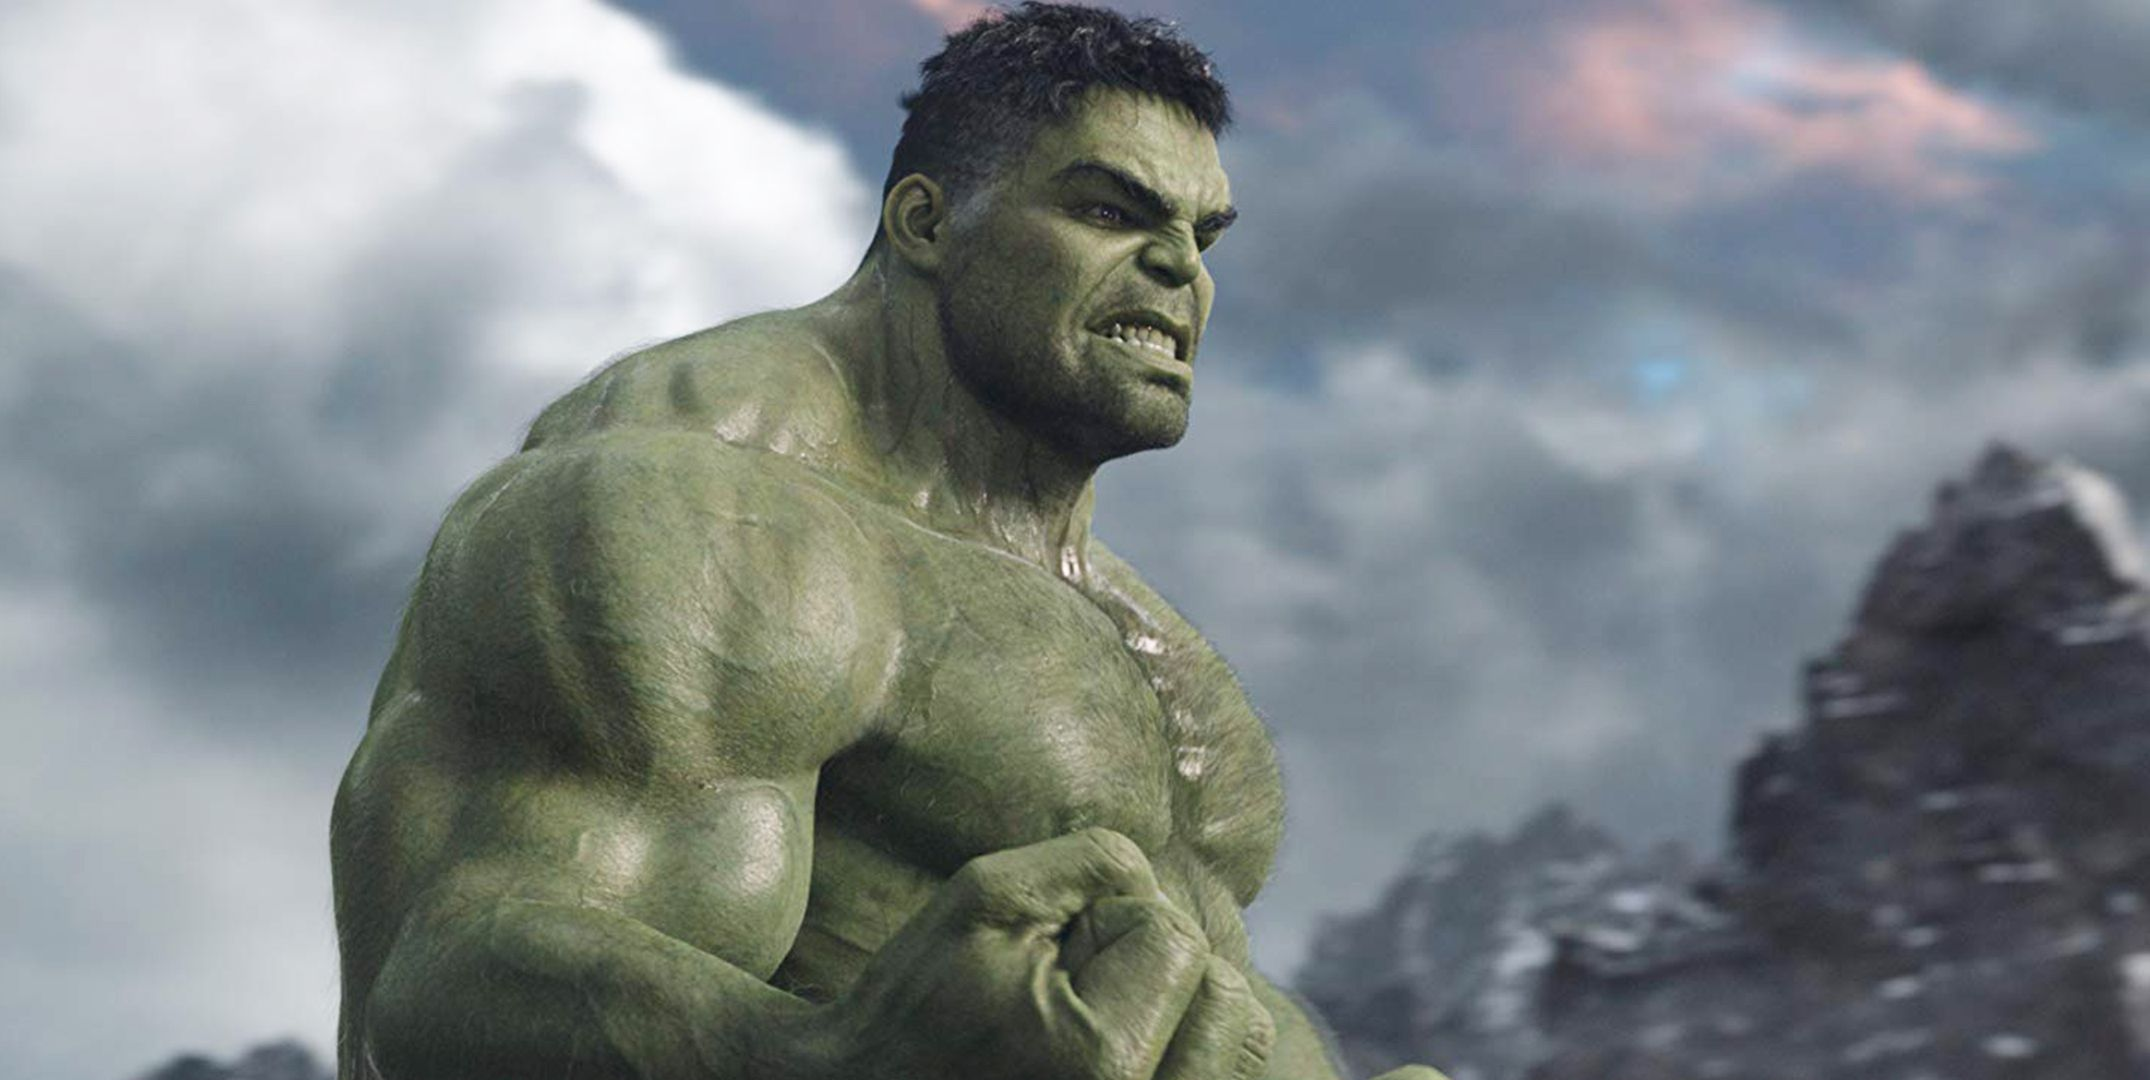 The Hulk in the Marvel movie, Thor: Ragnarok